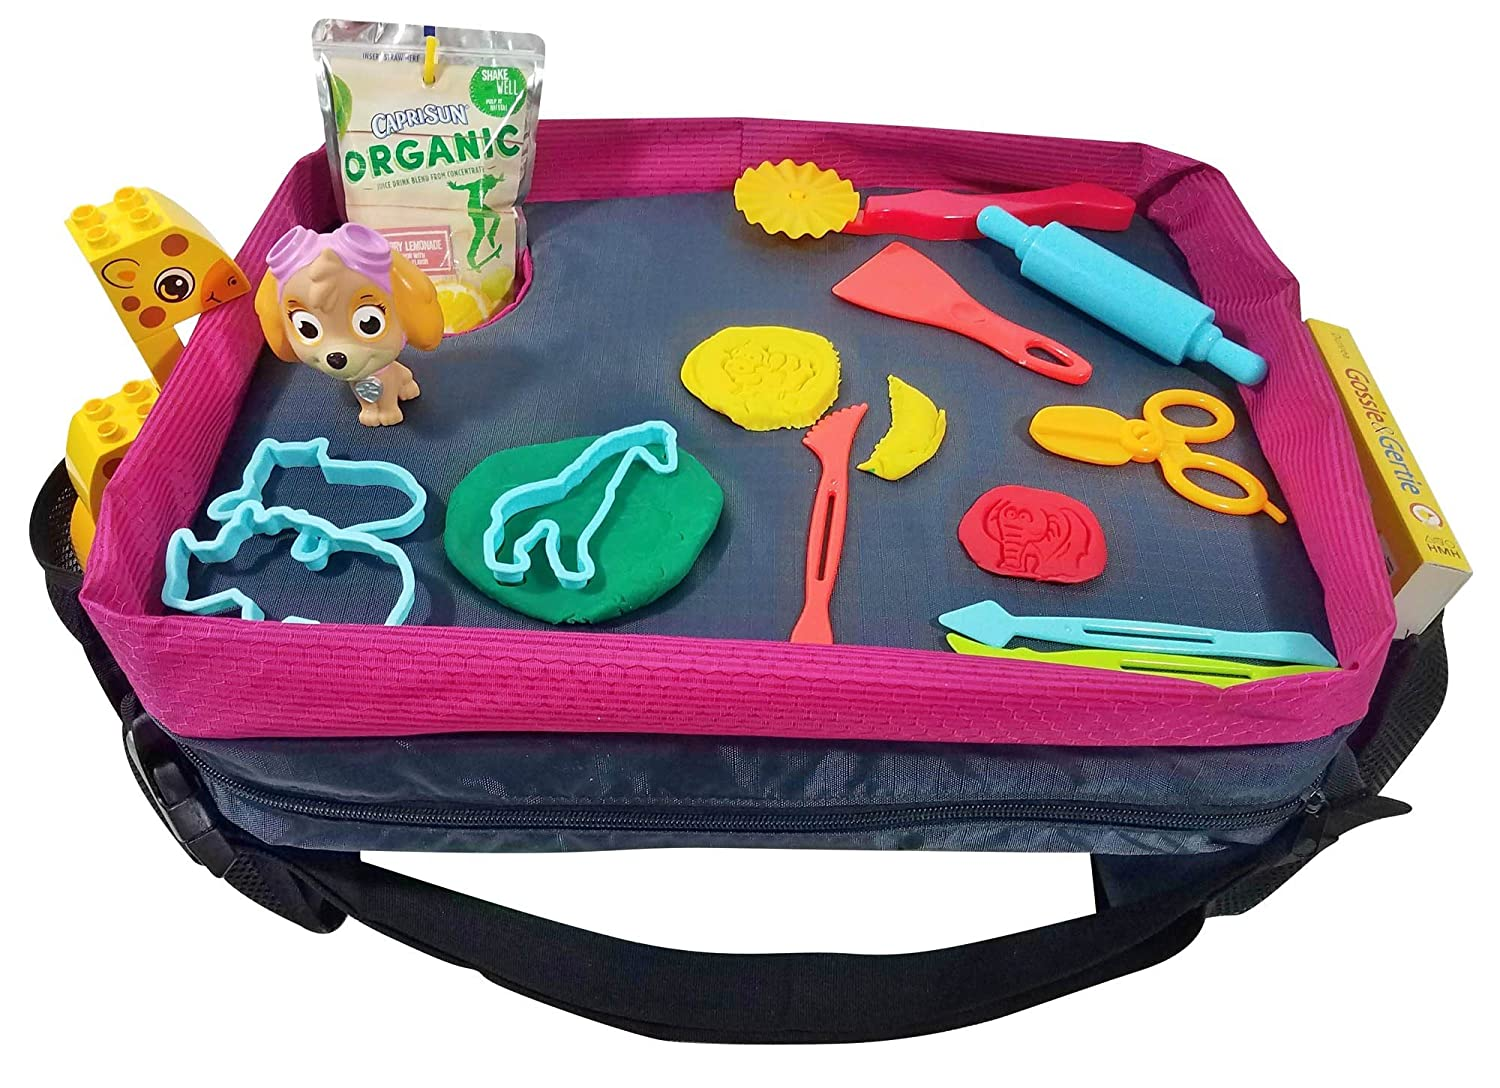 Reinforced Entertainment Surface /& Best Cup Holder Car Seat Tray /& Lap Desk for Kids /& Toddlers in Teal and Fuchsia by Dynamic Kidz Snack and Play Travel Tray